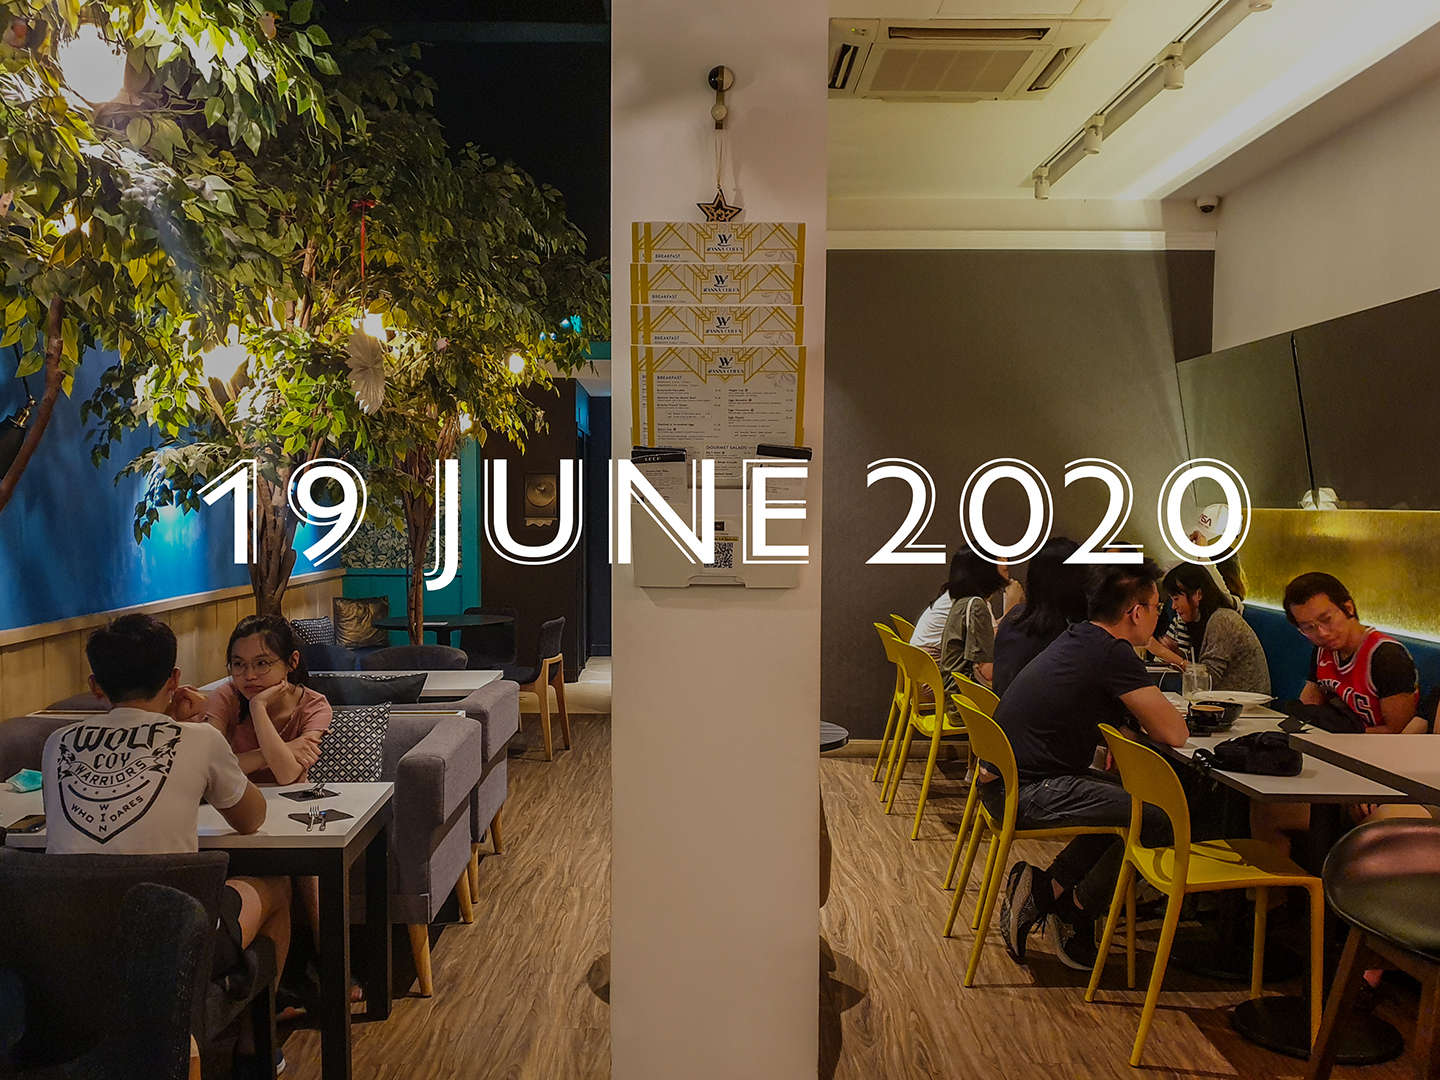 """An image of the rear dining area with dine-in customers to either side of a central column. To the left of image, there are three large trees amongst a variety of seating arrangements.. Seating area to the right has an inclined mirror over a blue banquette seating. """"19 June 2020"""" in white is centrally positioned within the image. It is the date when F&B businesses are allowed to have dine-in customers again if social distancing measures are implemented."""